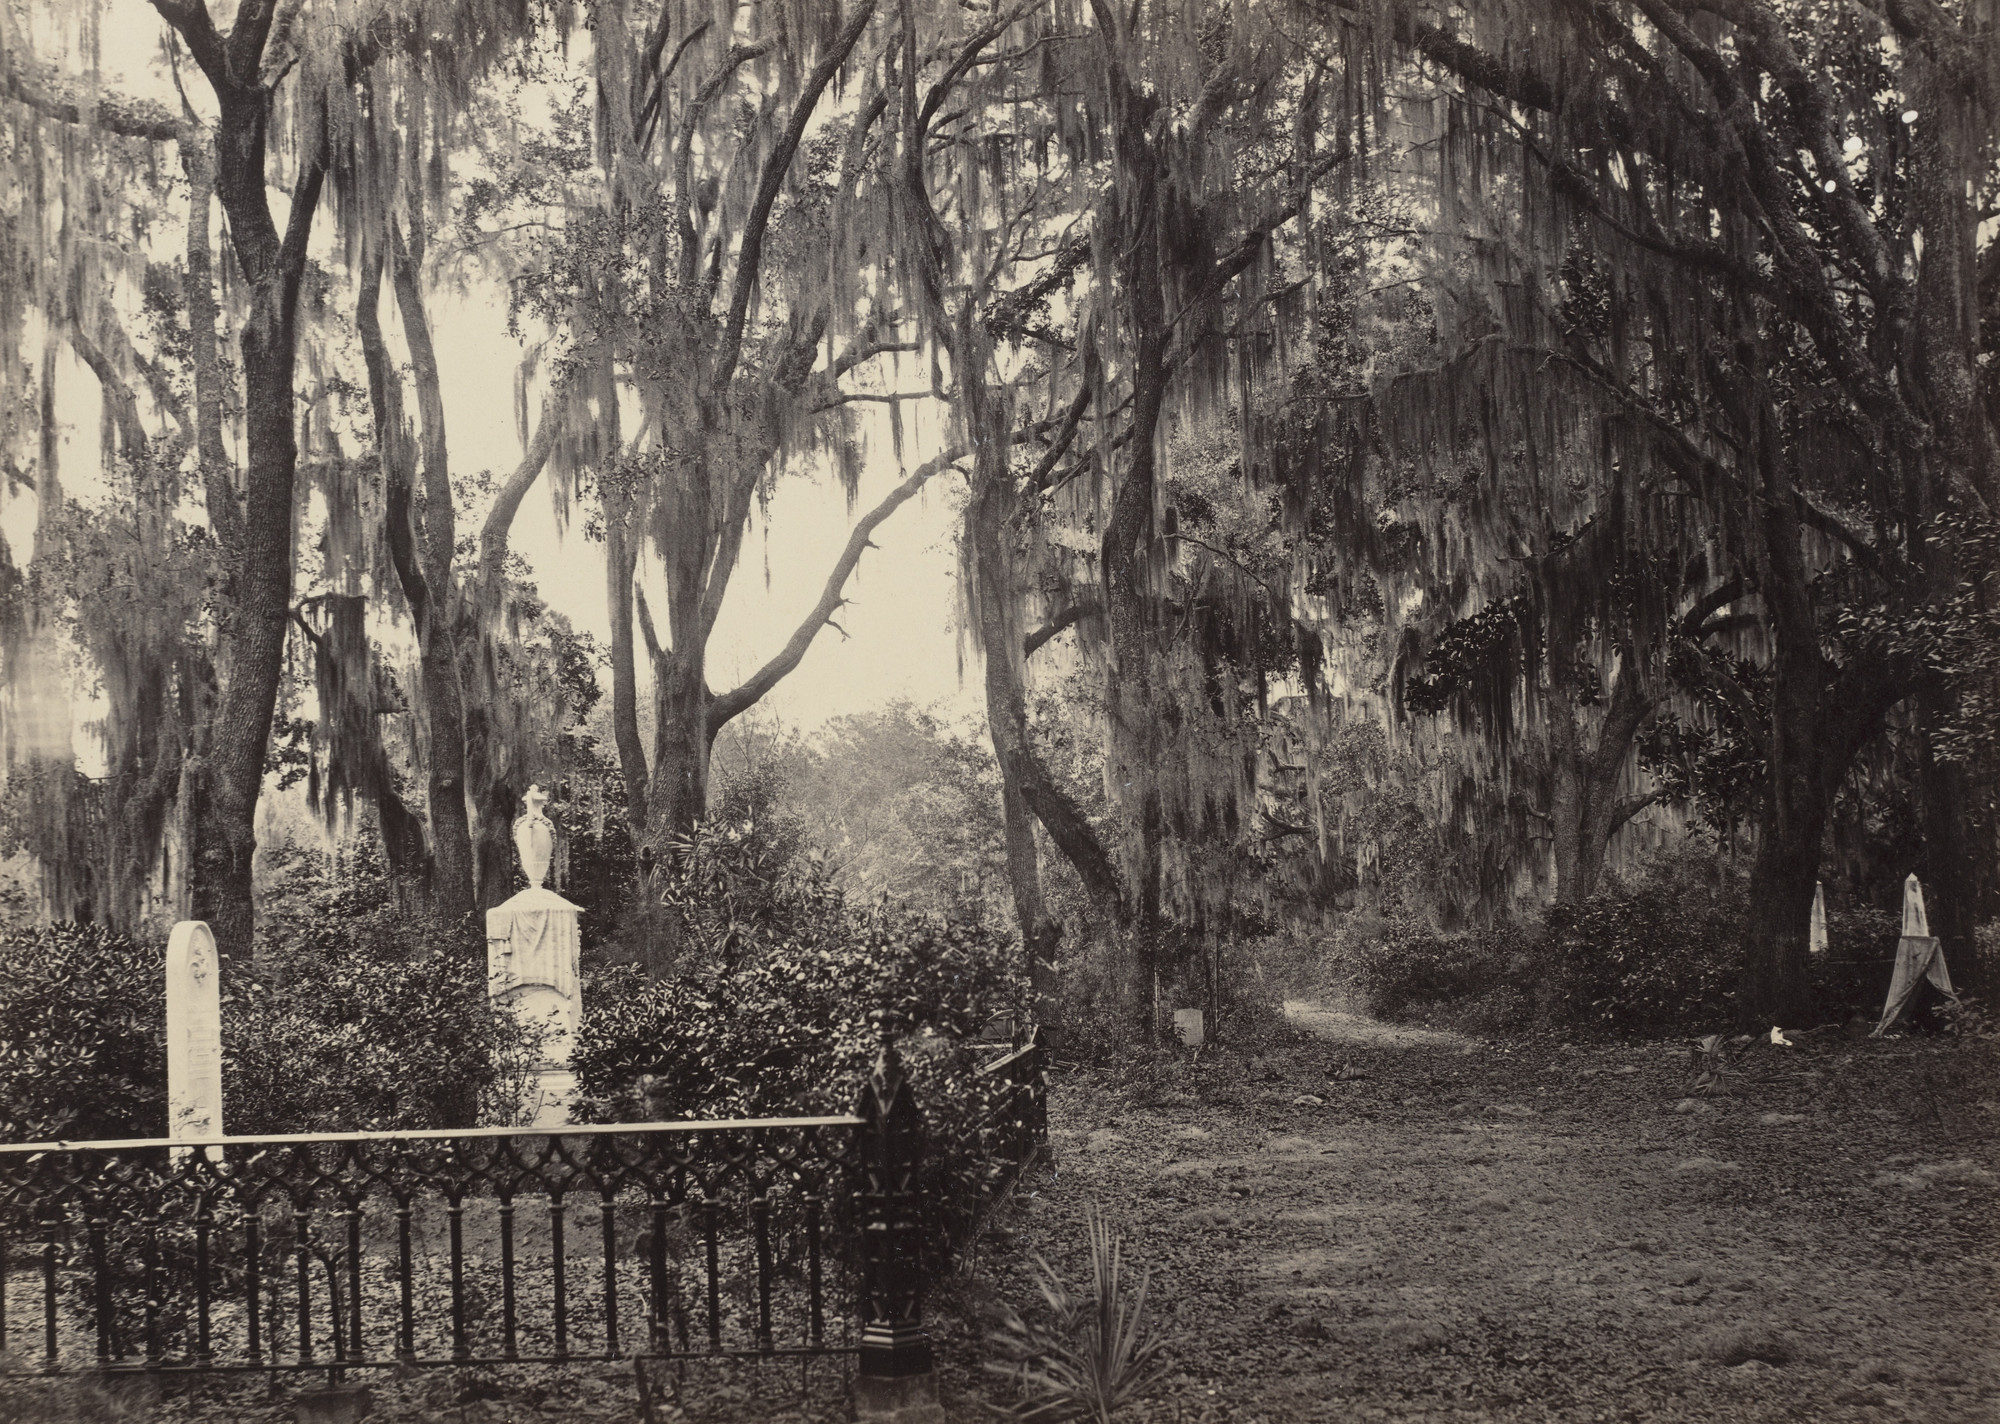 George Barnard. Buen Ventura, Savannah from the album Photographic Views of Sherman's Campaign. 1864-65